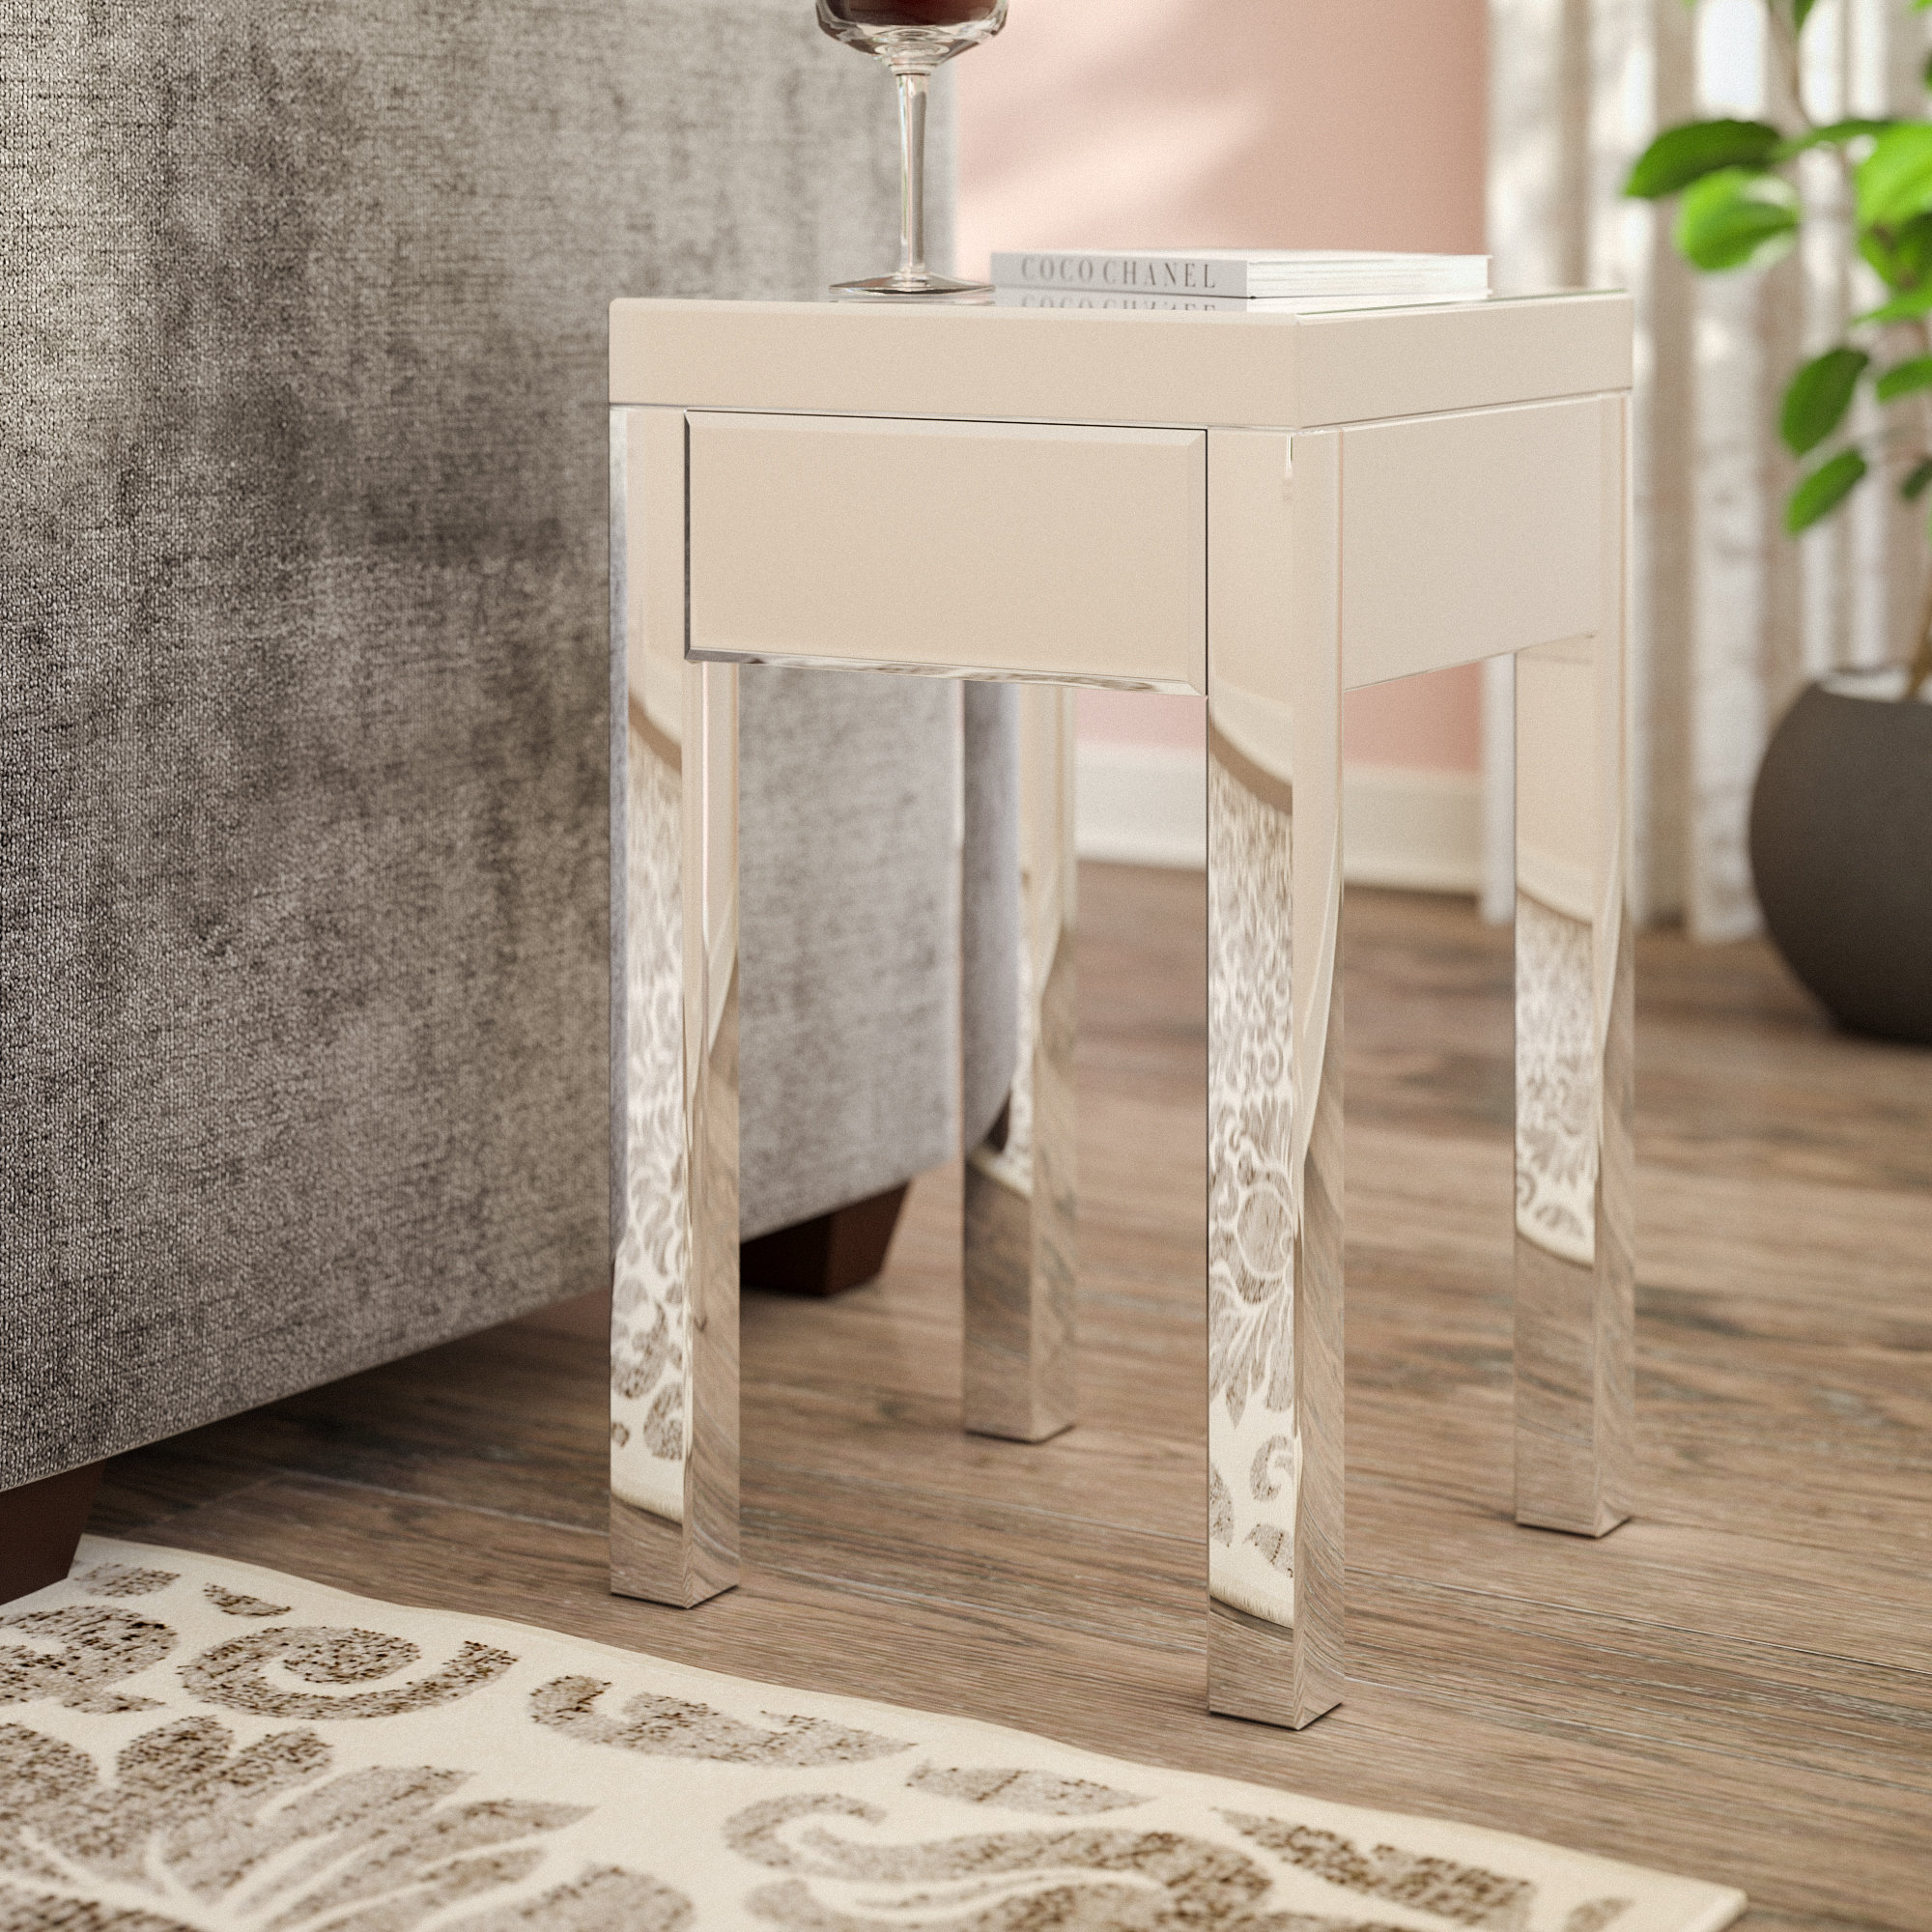 small mirrored accent table keels end with storage gold nightstand phone wooden legs all wood tables samsung prix maroc cream linen tablecloth mirror and bedside glass coffee